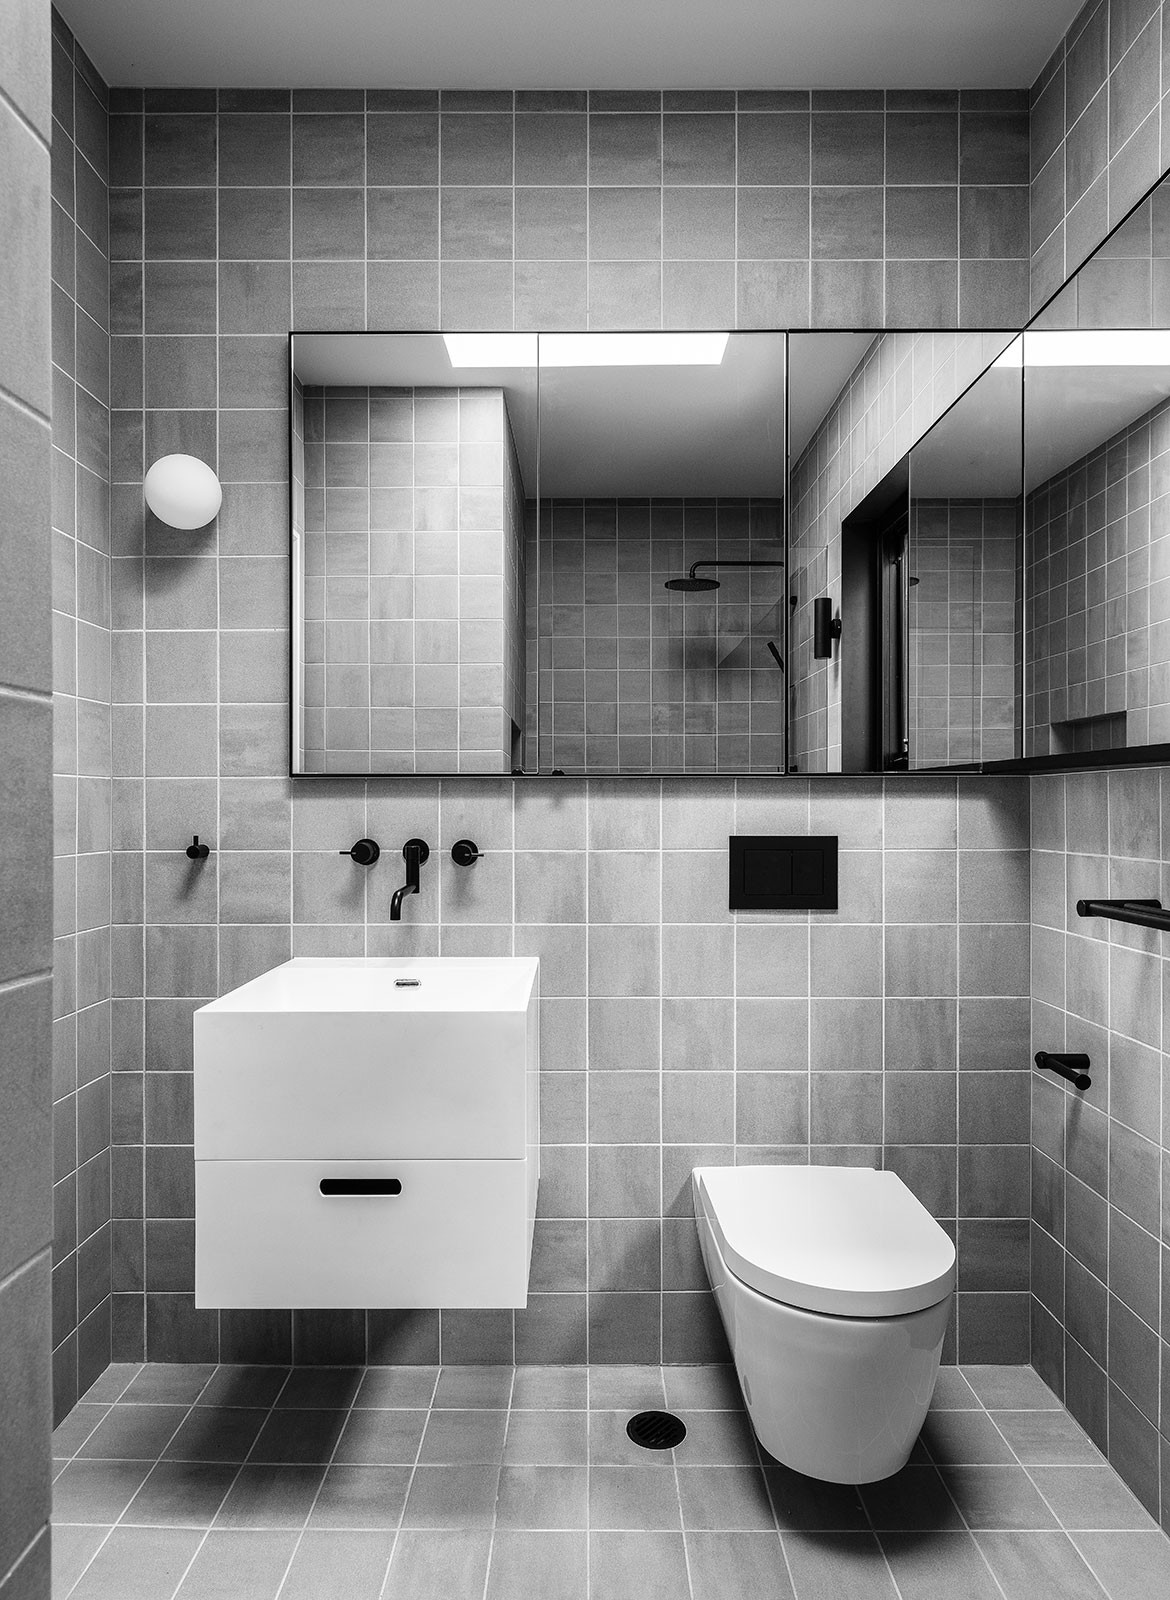 Leichardt Oaks Benn+Penna CC Tom Ferguson bathroom